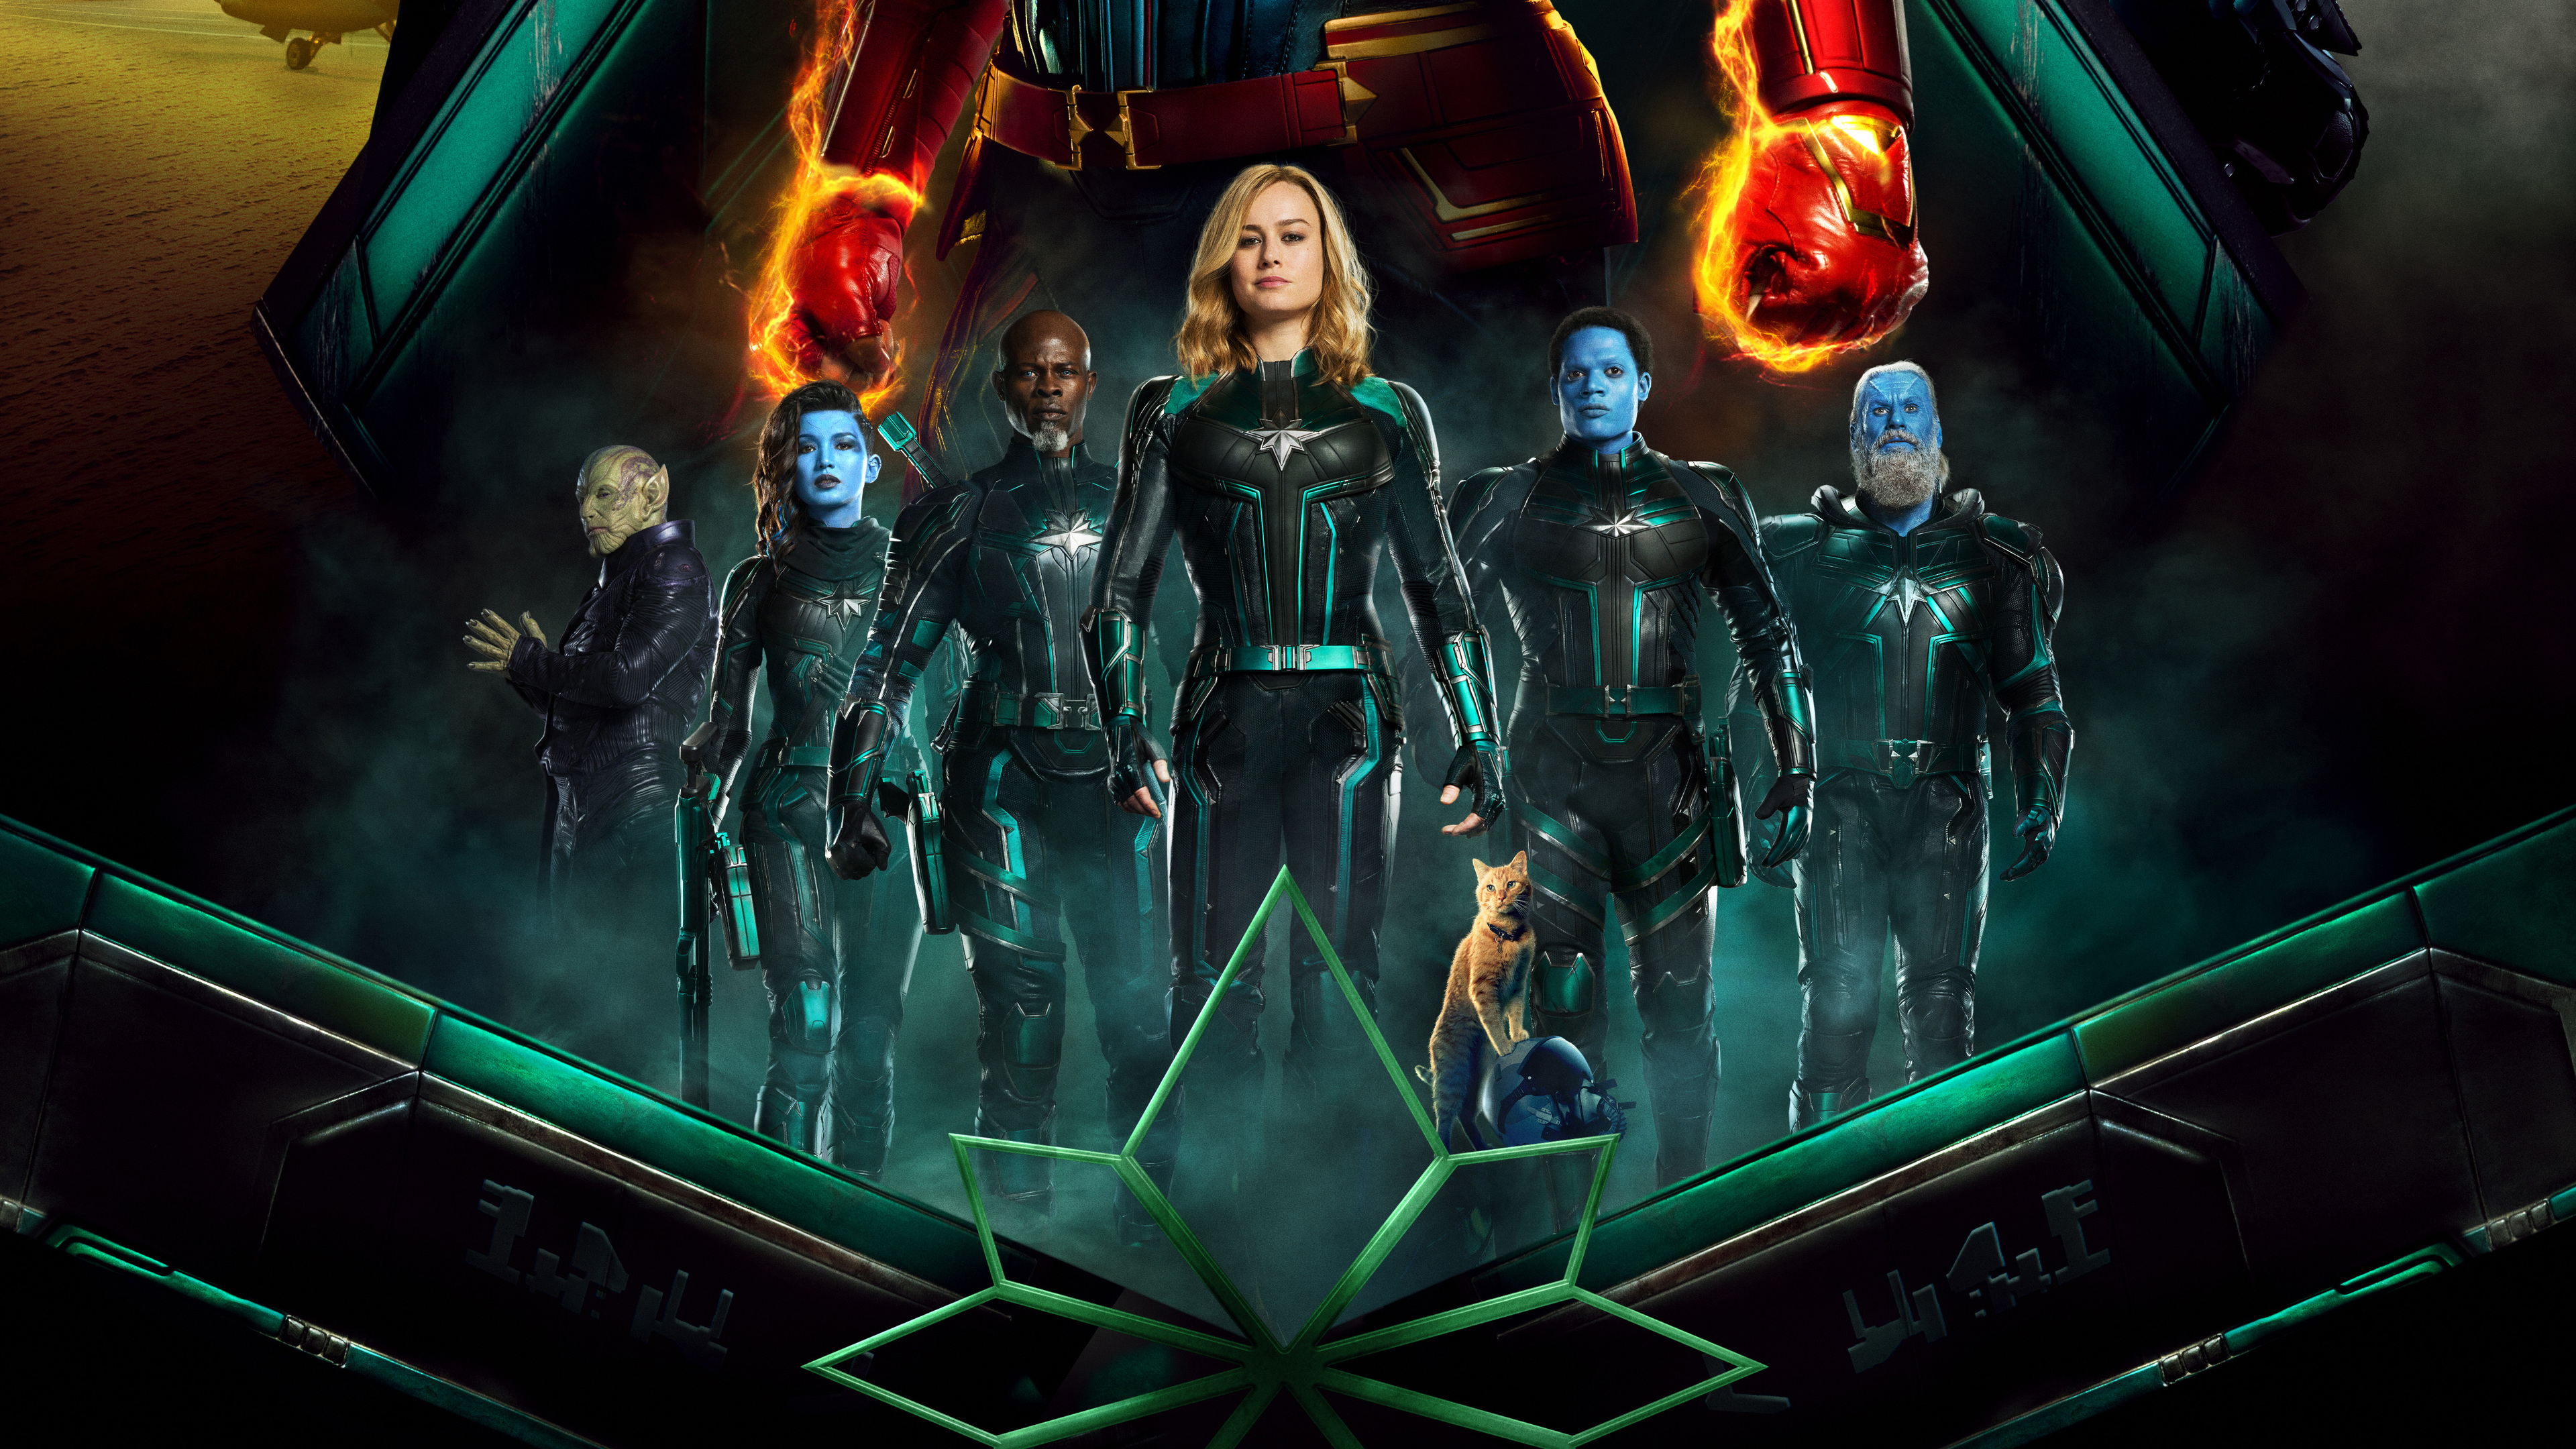 captain marvel 4k new 1550513654 - Captain Marvel 4k New - poster wallpapers, movies wallpapers, hd-wallpapers, carol danvers wallpapers, captain marvel wallpapers, captain marvel movie wallpapers, brie larson wallpapers, 5k wallpapers, 4k-wallpapers, 2019 movies wallpapers